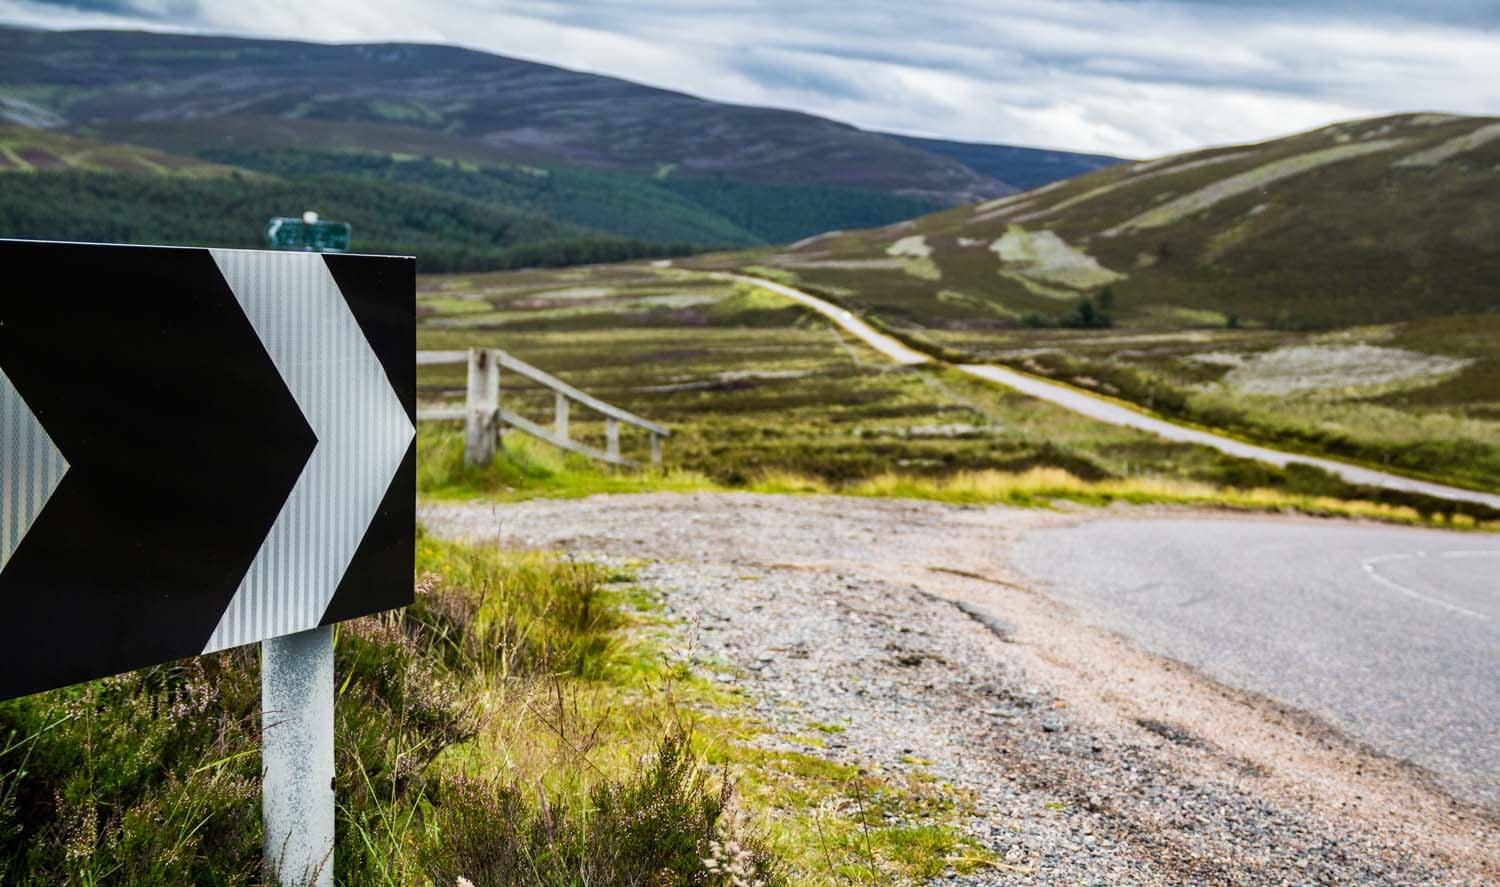 Follow the signs on your cycling trip